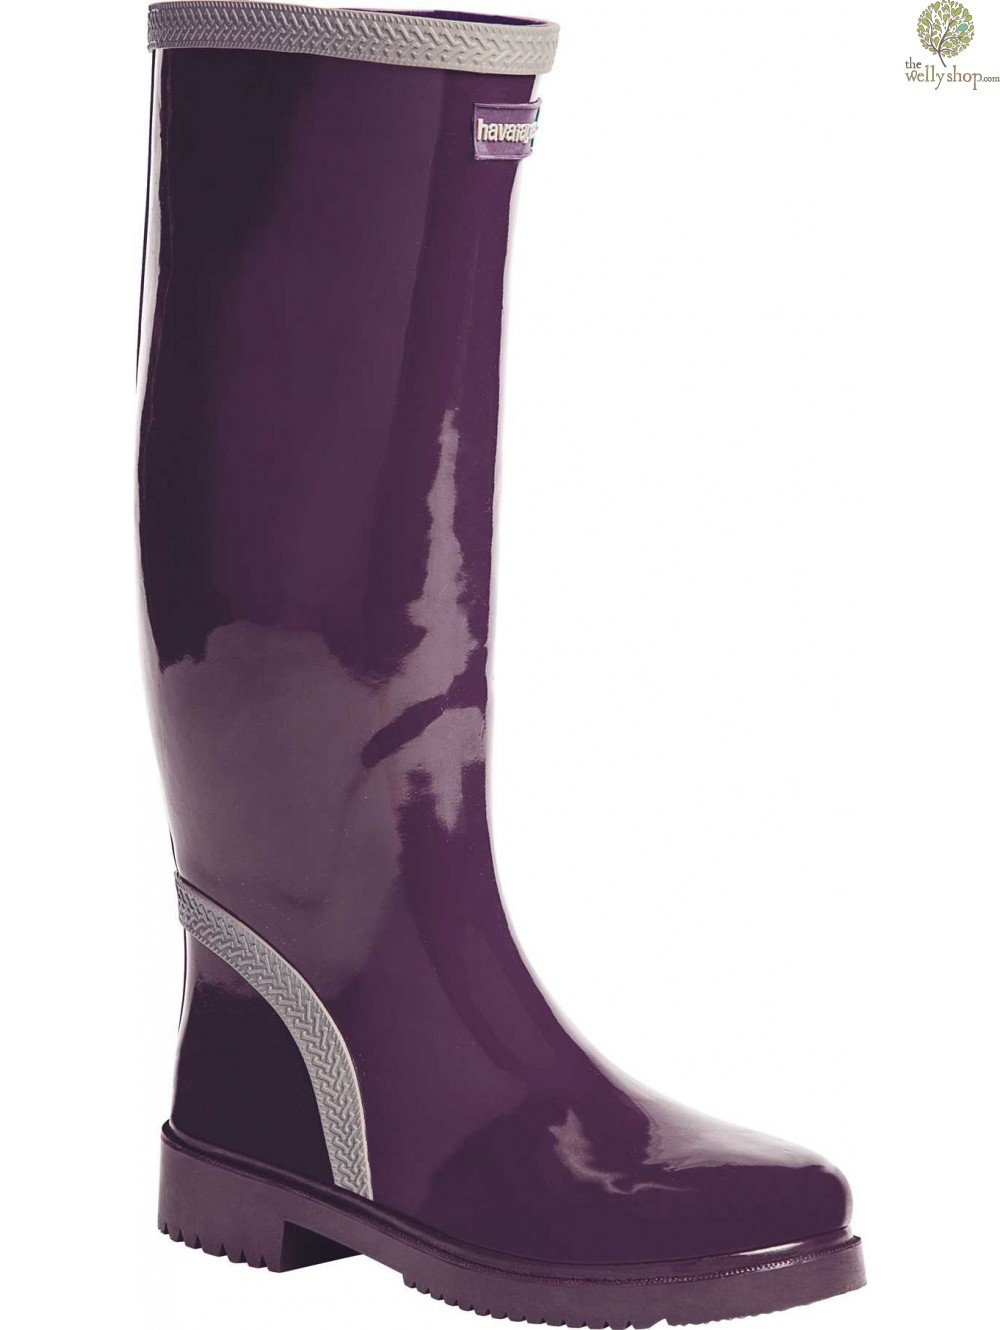 Havaianas Tall Ladies Boots Aubergine Grey Available In